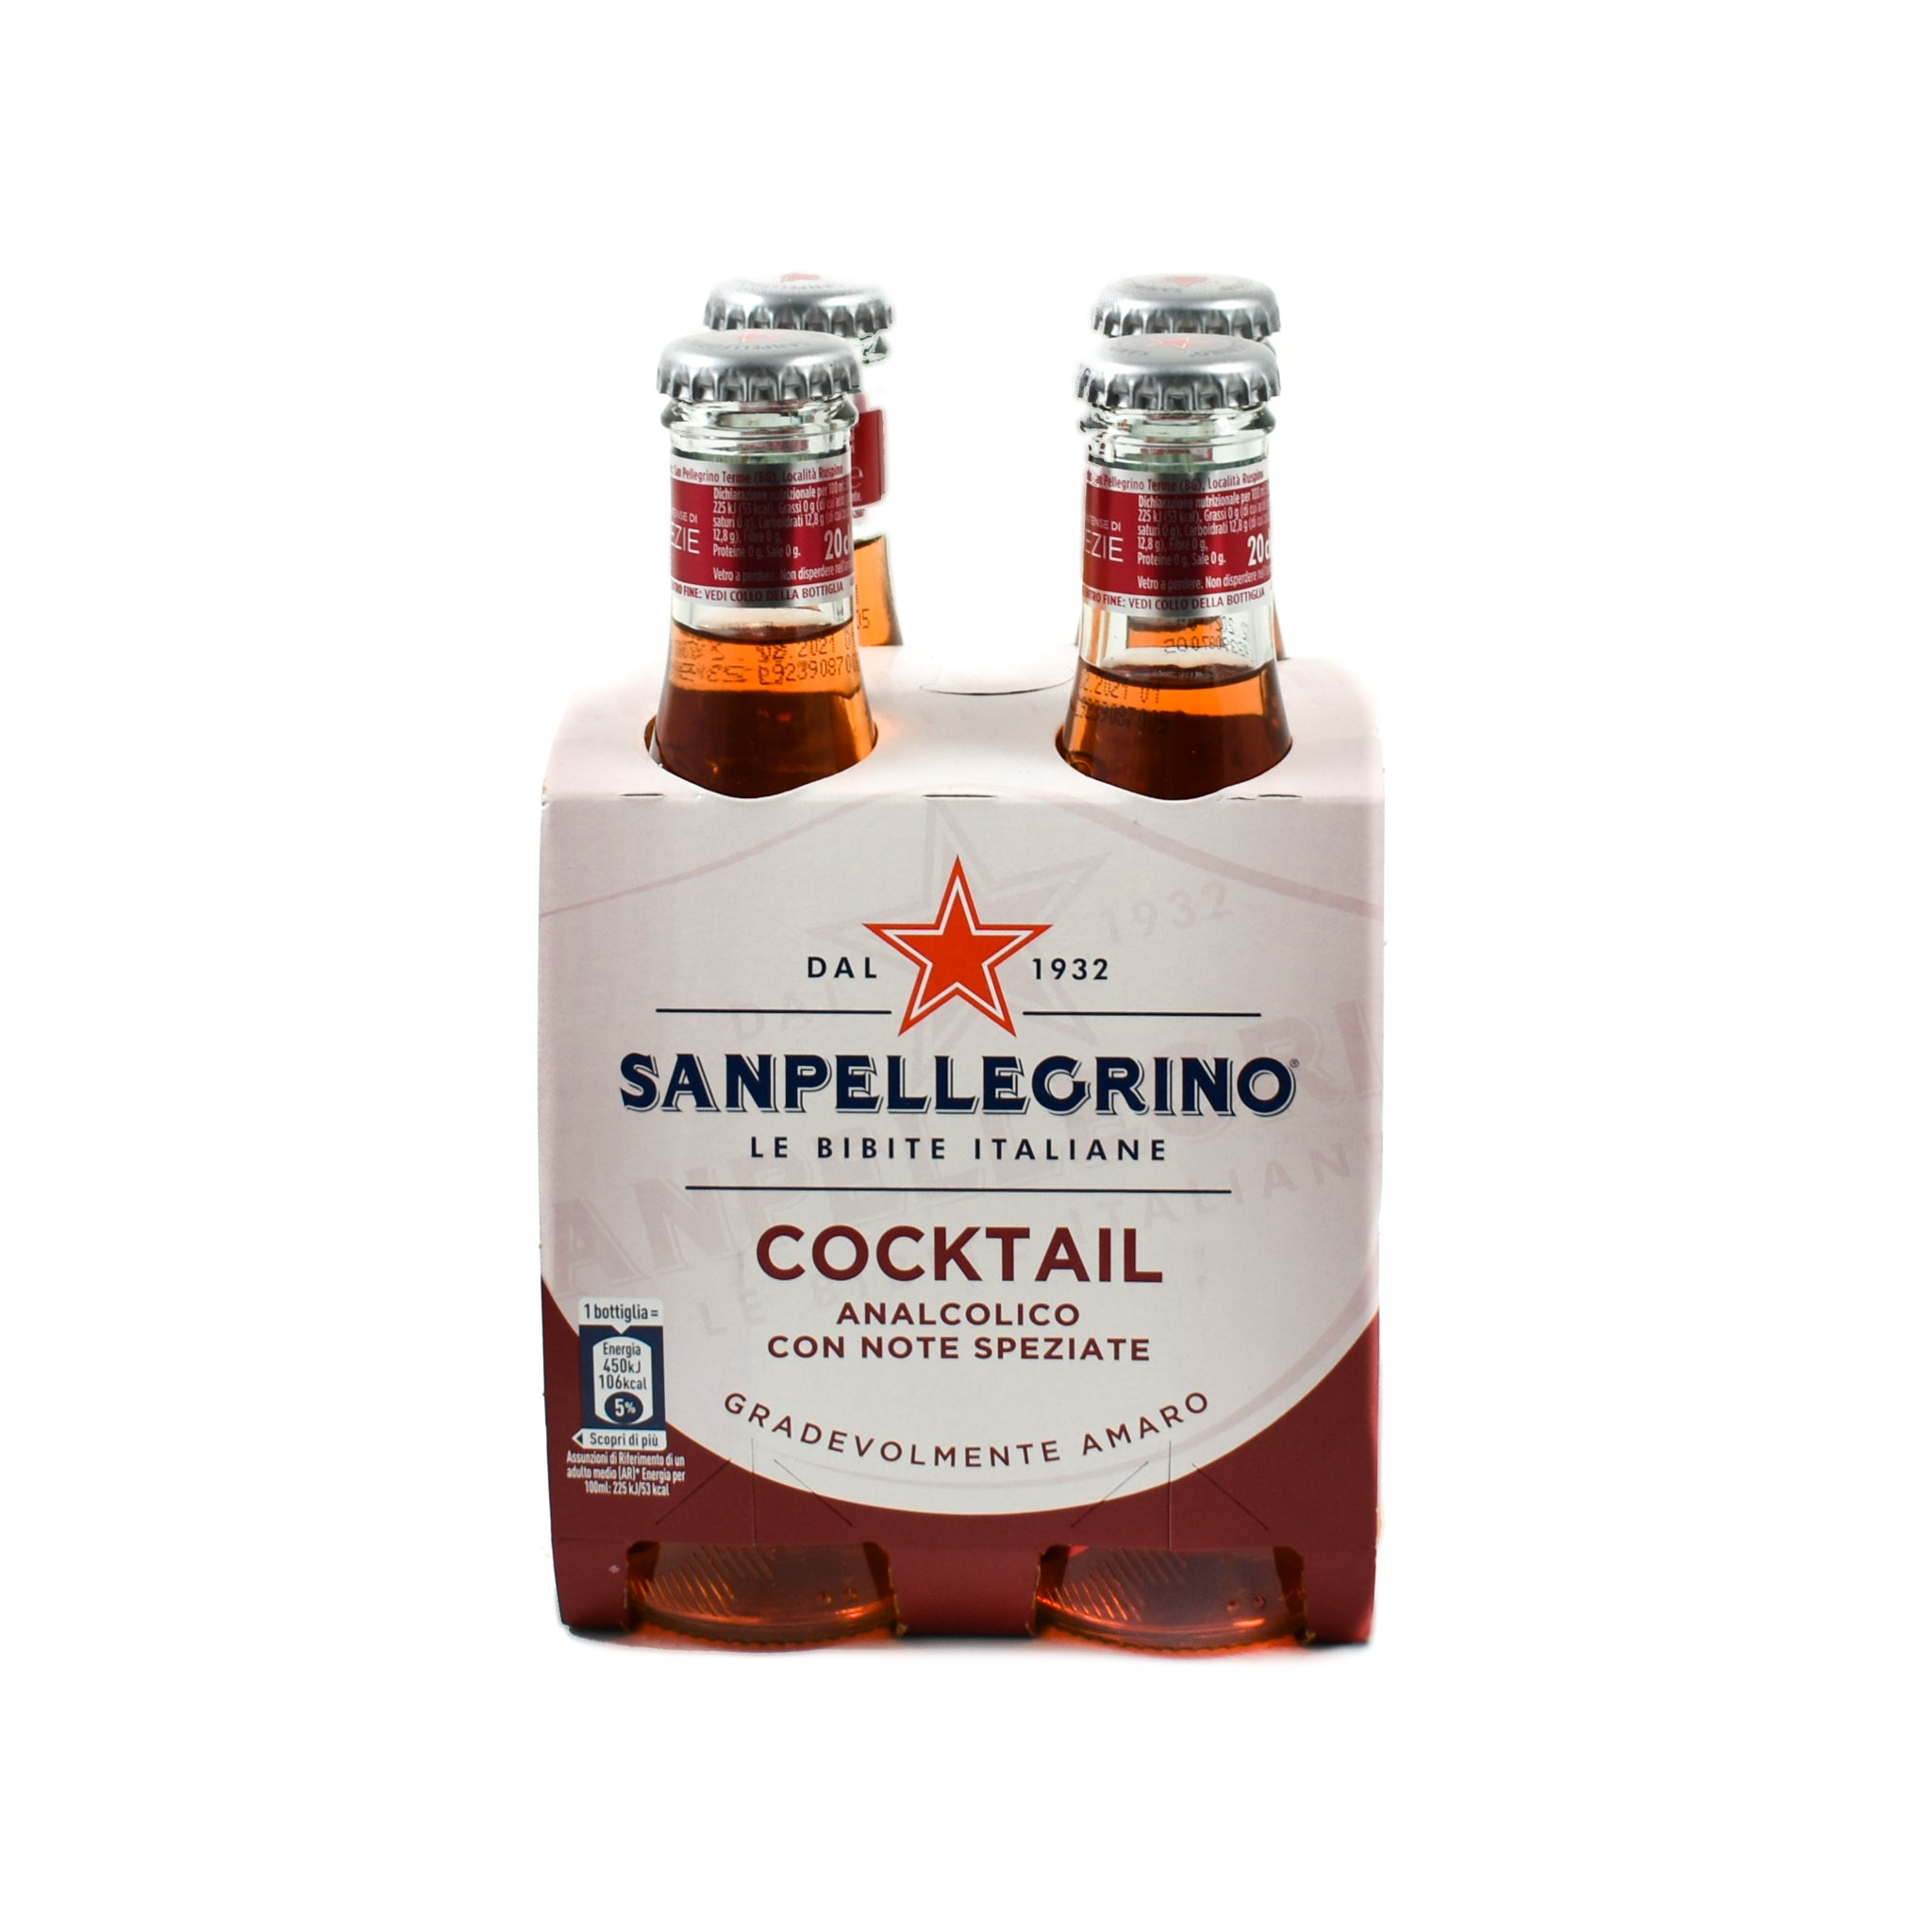 Sanpellegrino Cocktail - 20cl x 4 Ingredients Drinks Non-Alcoholic Drinks & Mocktails Italian Food